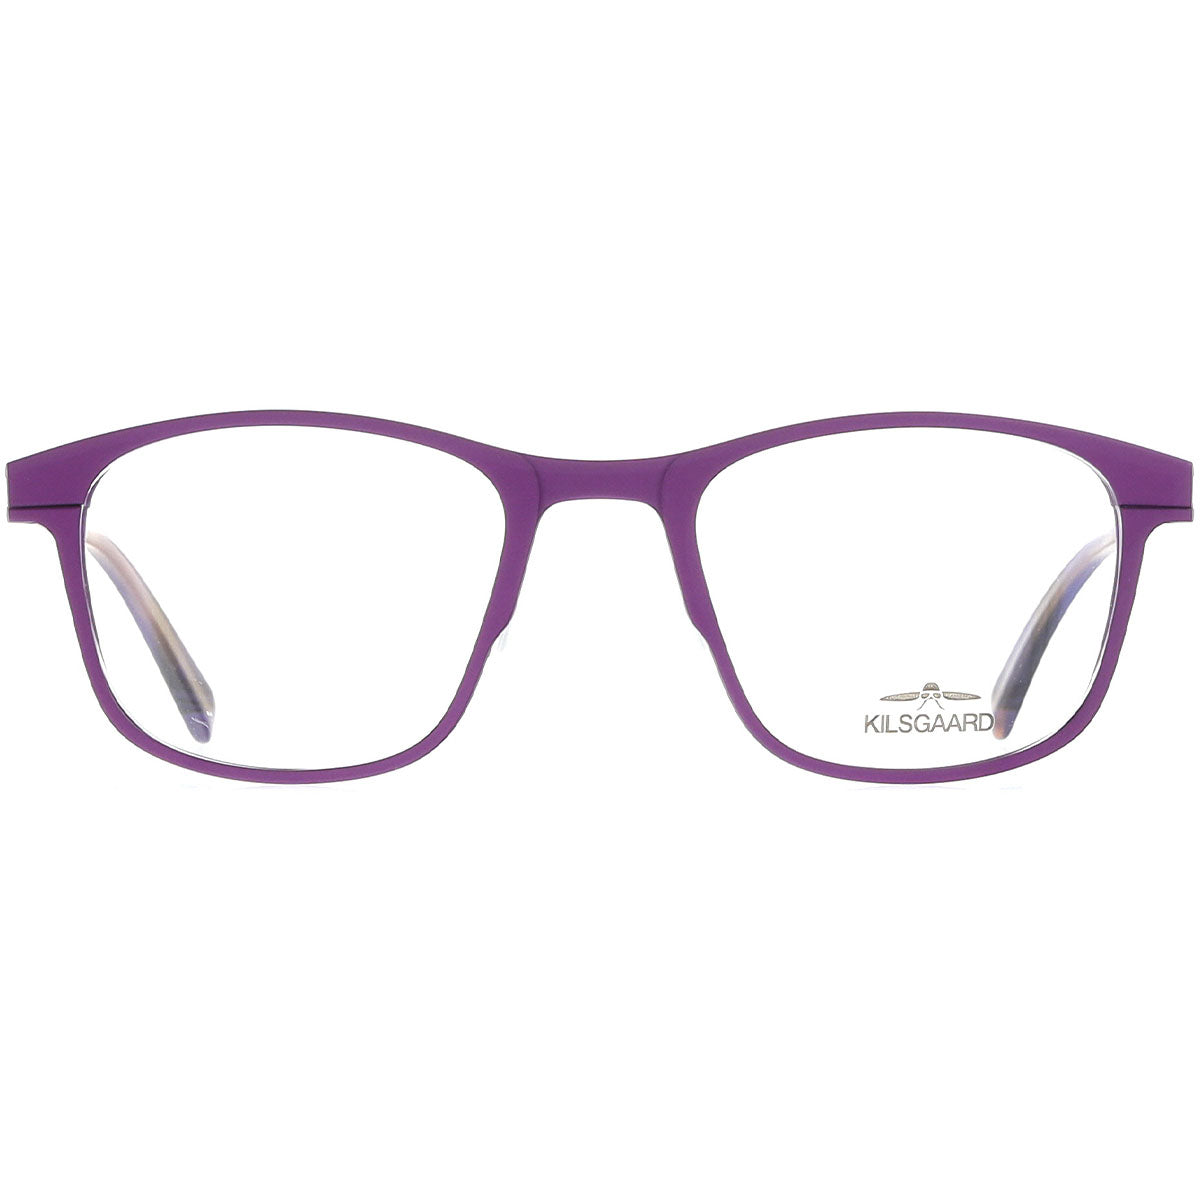 Kilsgaard Bonnelycke 63.8 Purple